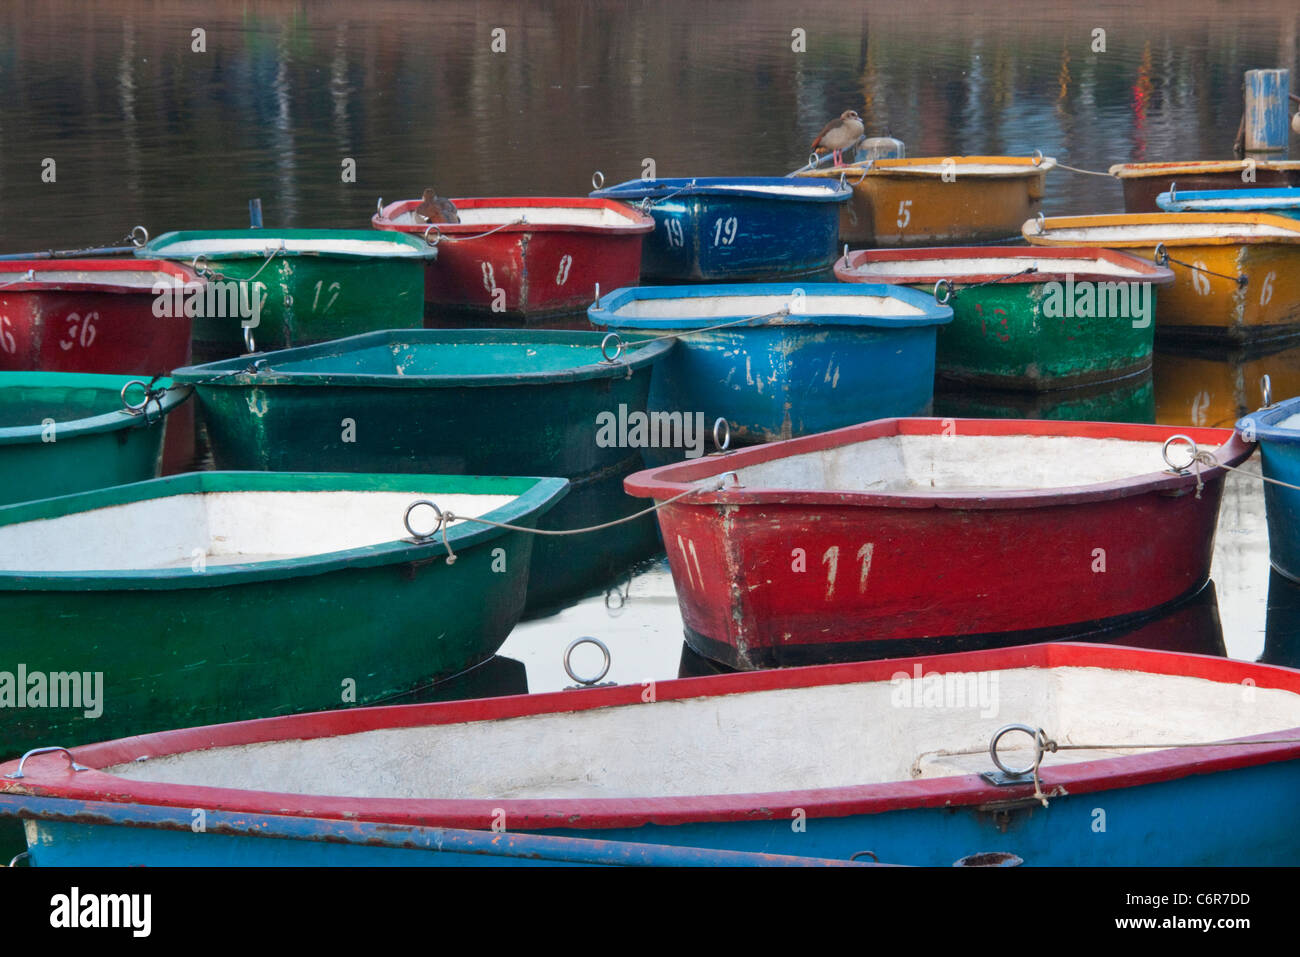 Colourful boats tied up together on a lake - Stock Image